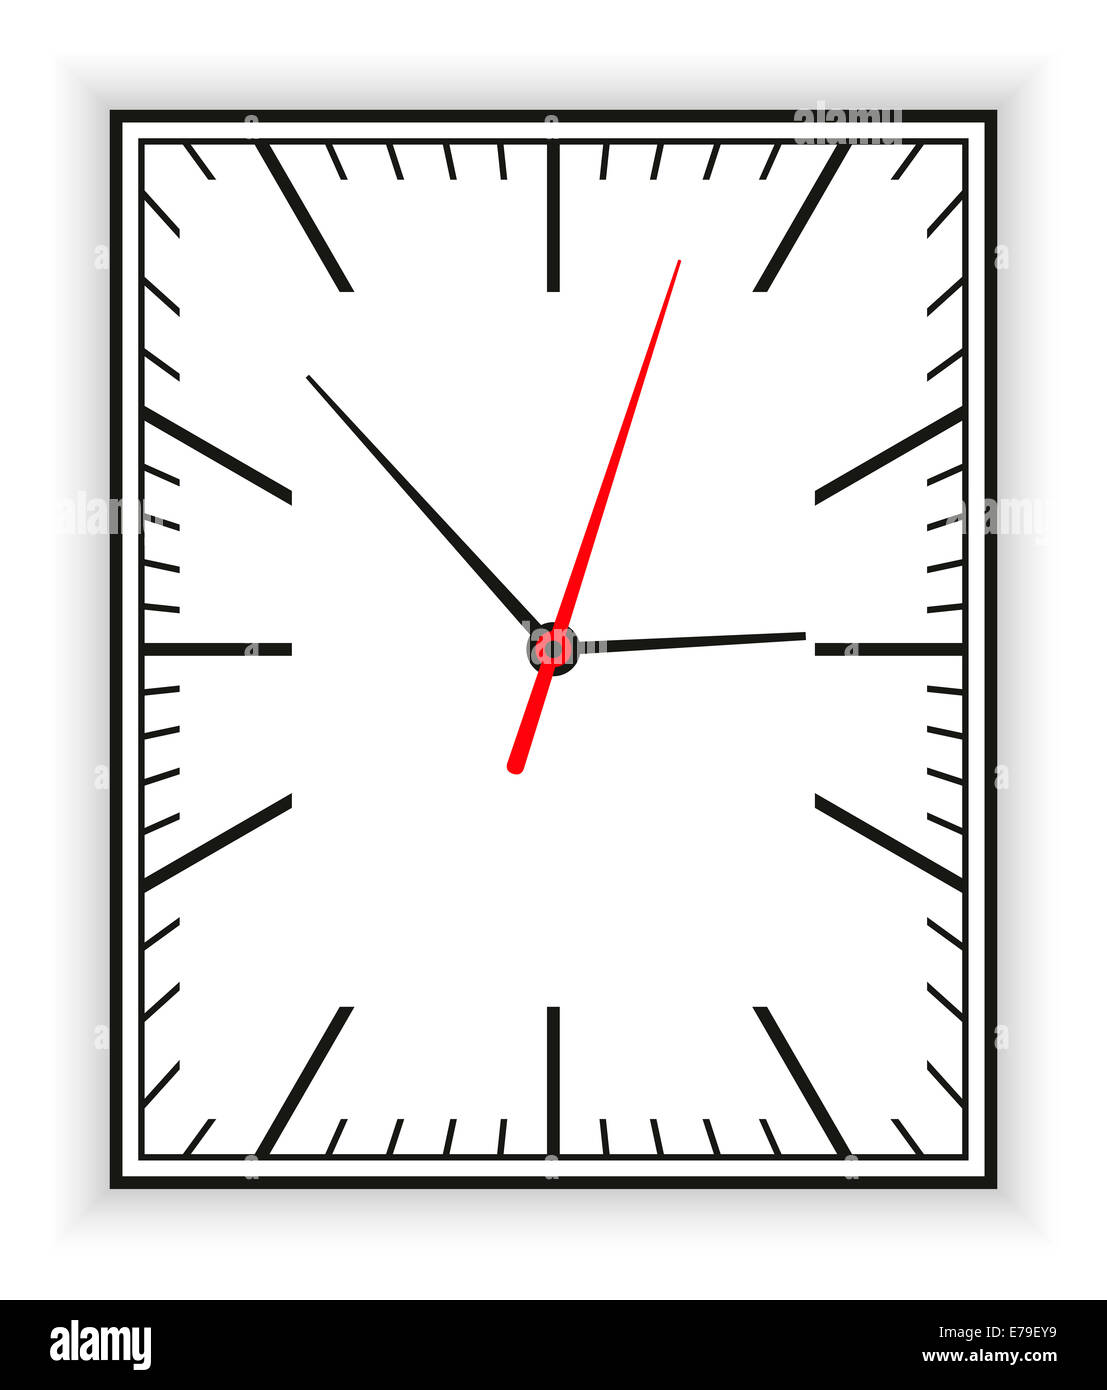 Oval Clock Face Rectangular Clock Face As Part Of An Analog Clock With Black And